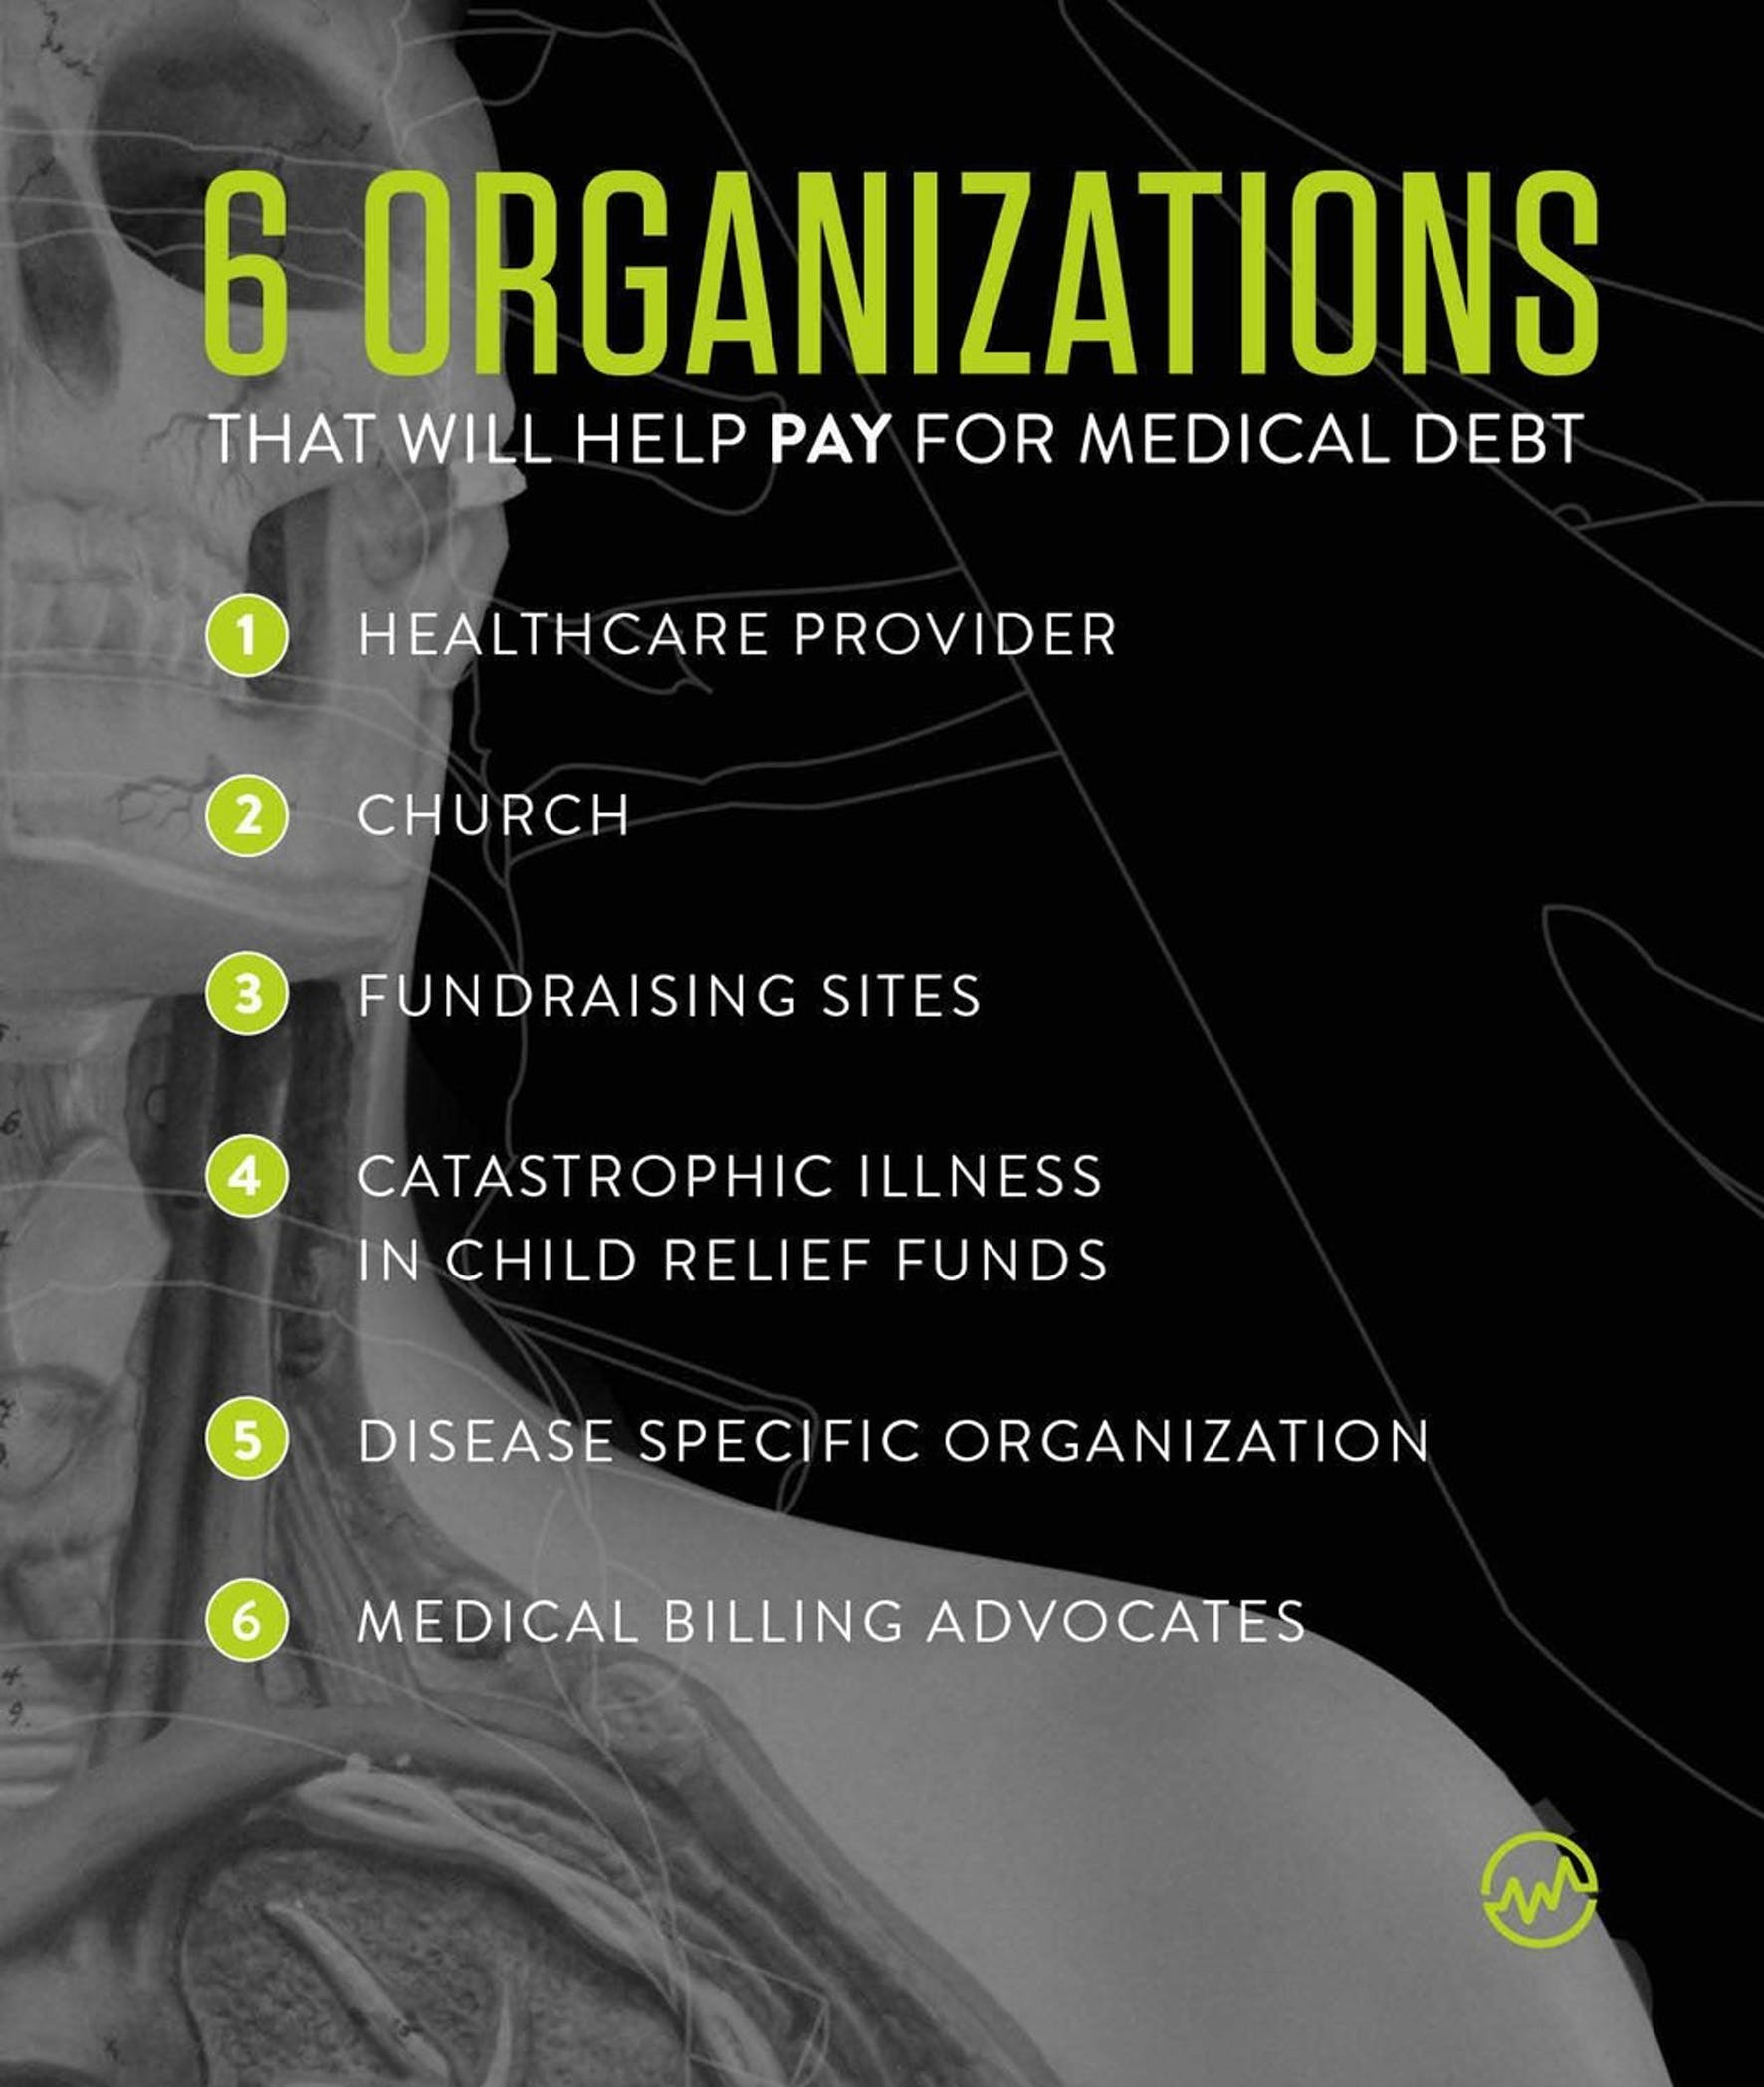 6 organizations that help pay medical bills: an X ray image of a patient's head, chest and shoulder